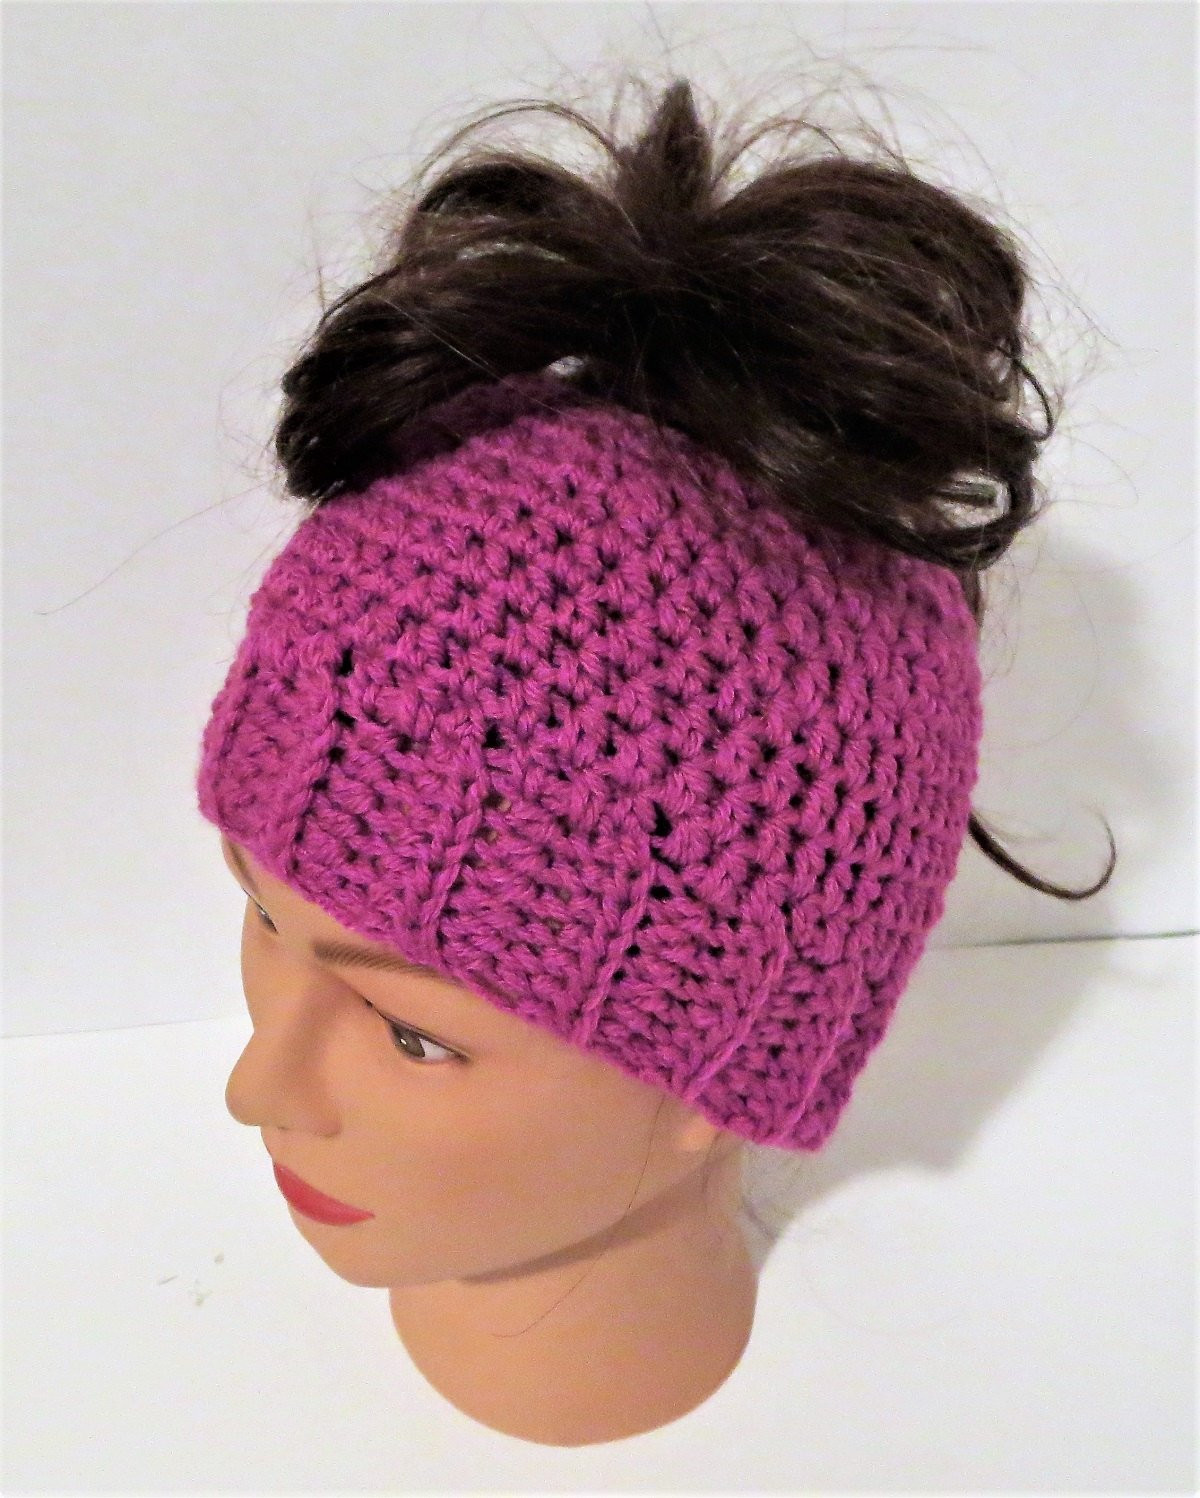 Bun Beanie Hat Beautiful Magenta Messy Bun Hat Pony Tail Beanie Crochet Messy Bun Of Contemporary 41 Pics Bun Beanie Hat